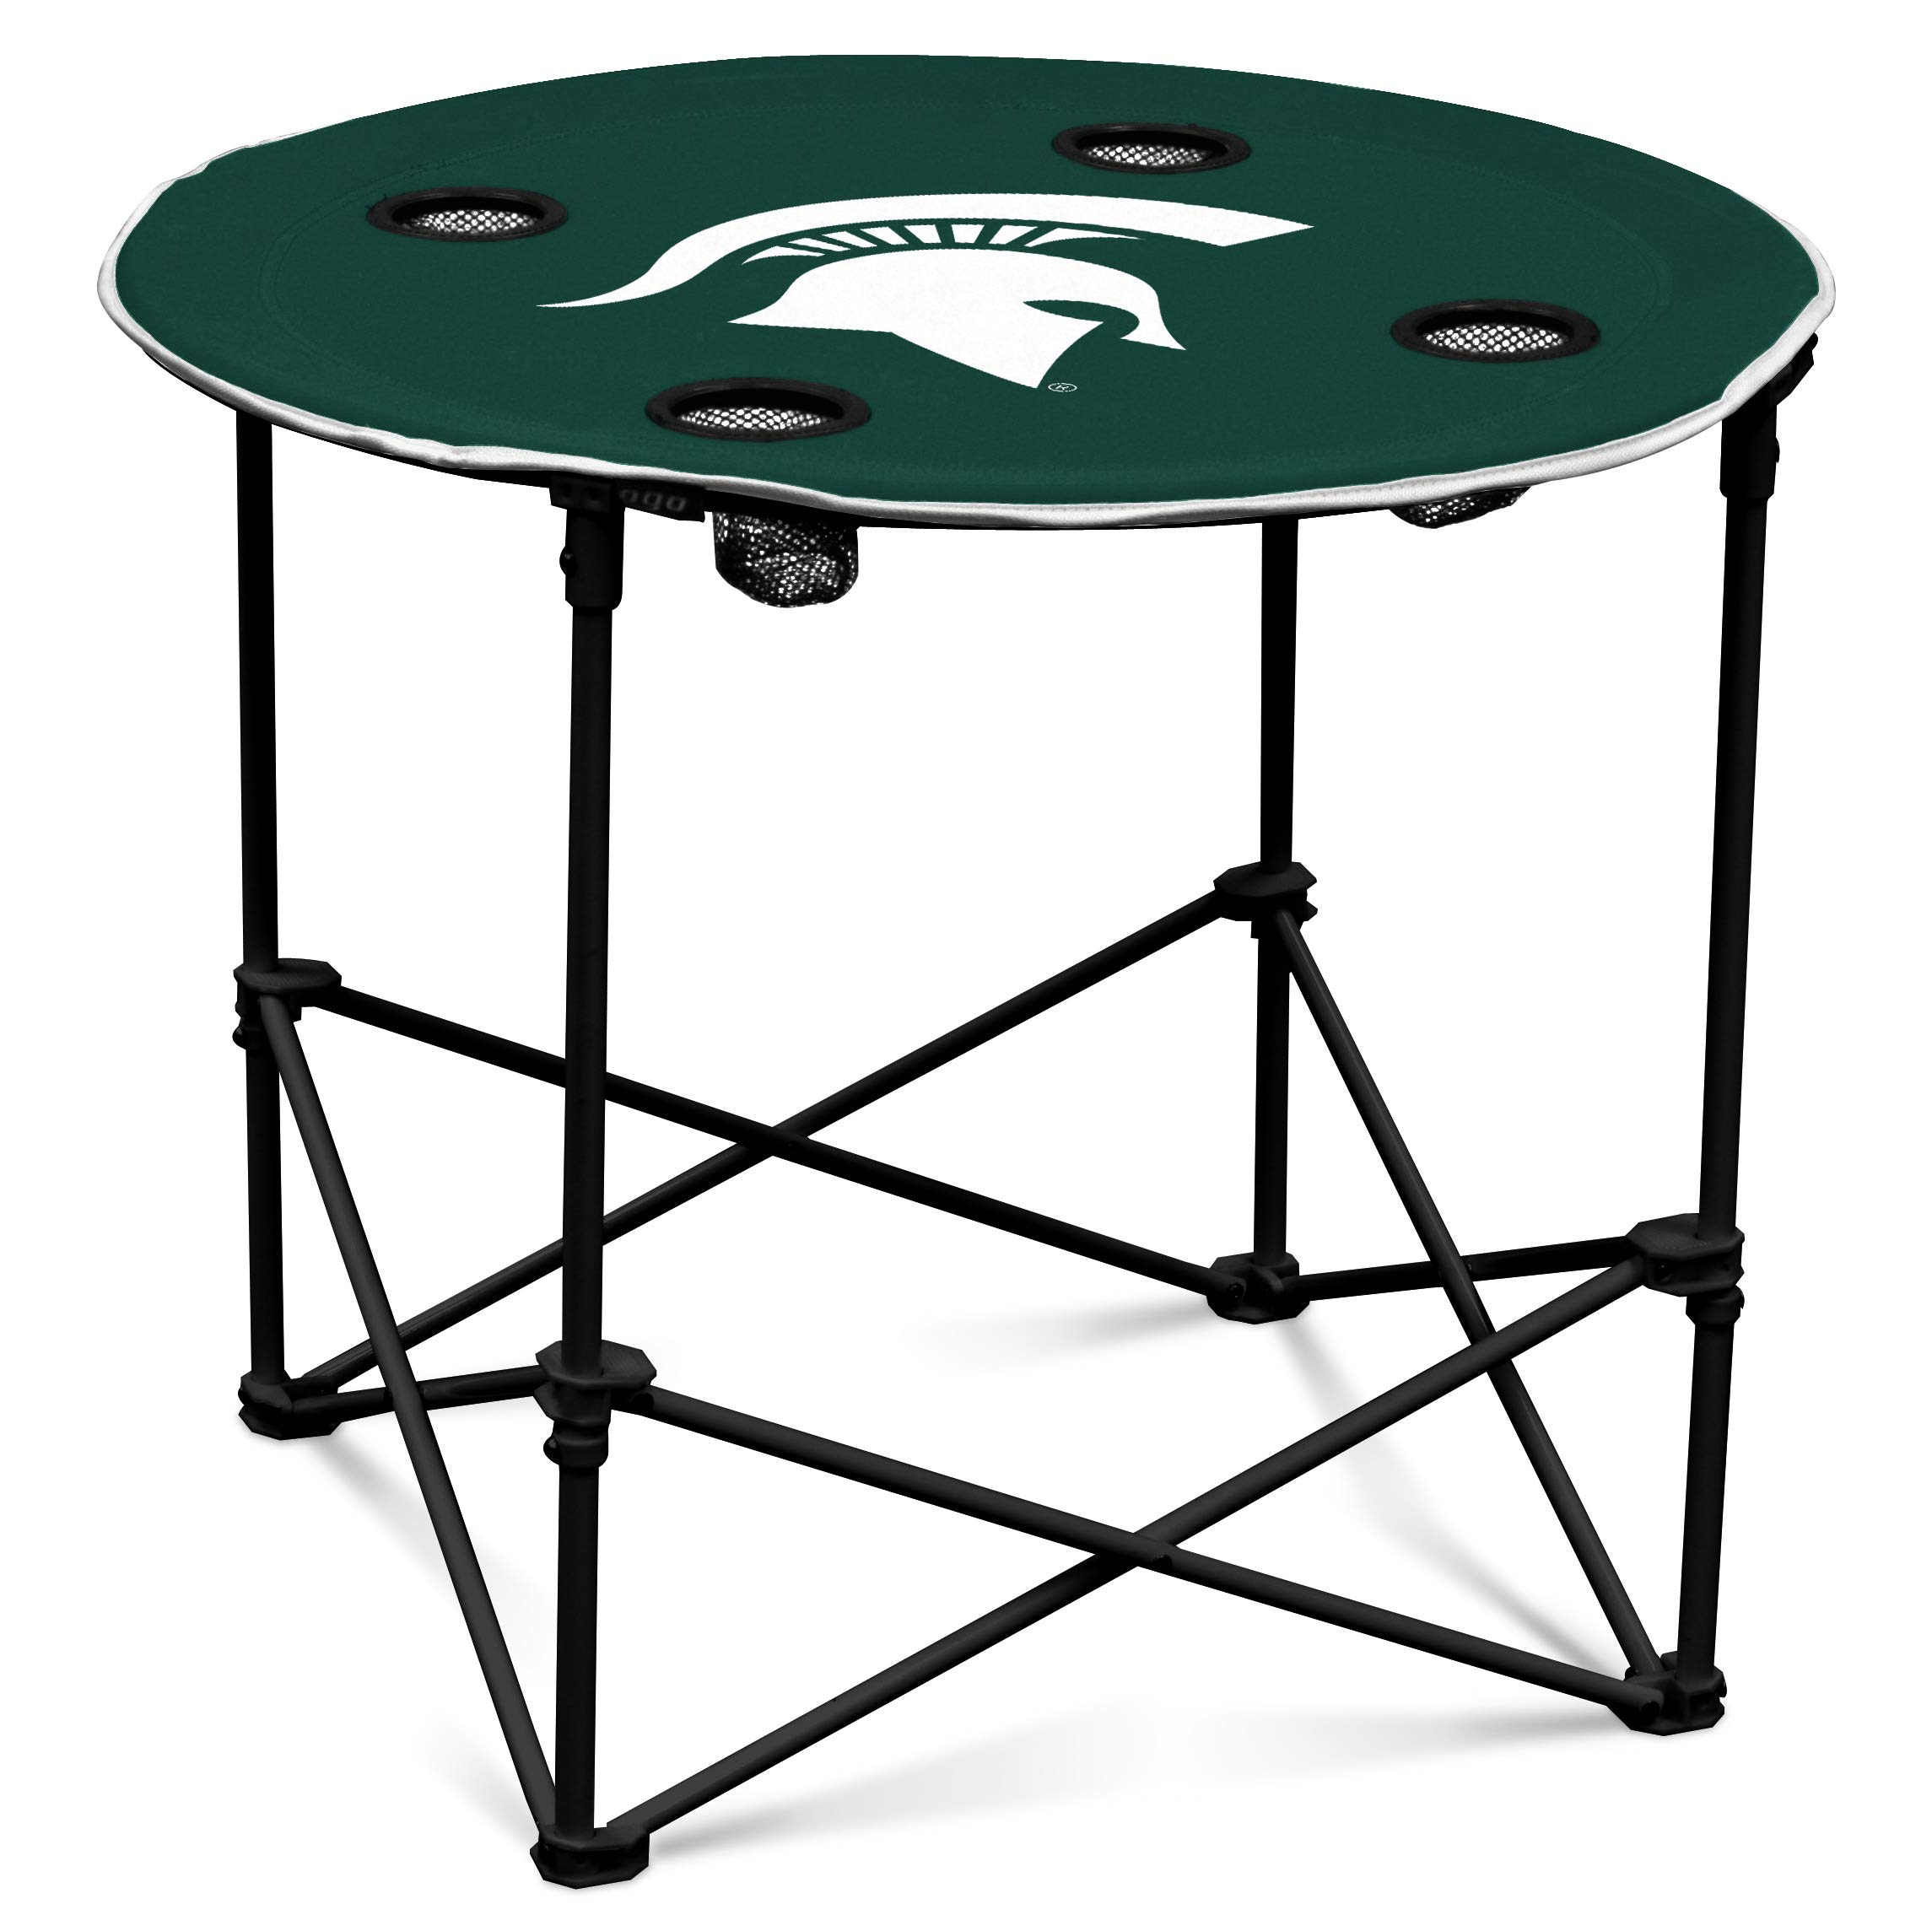 Michigan State Spartans Collapsible Round Table with 4 Cup Holders and Carry Bag by Logo Brands